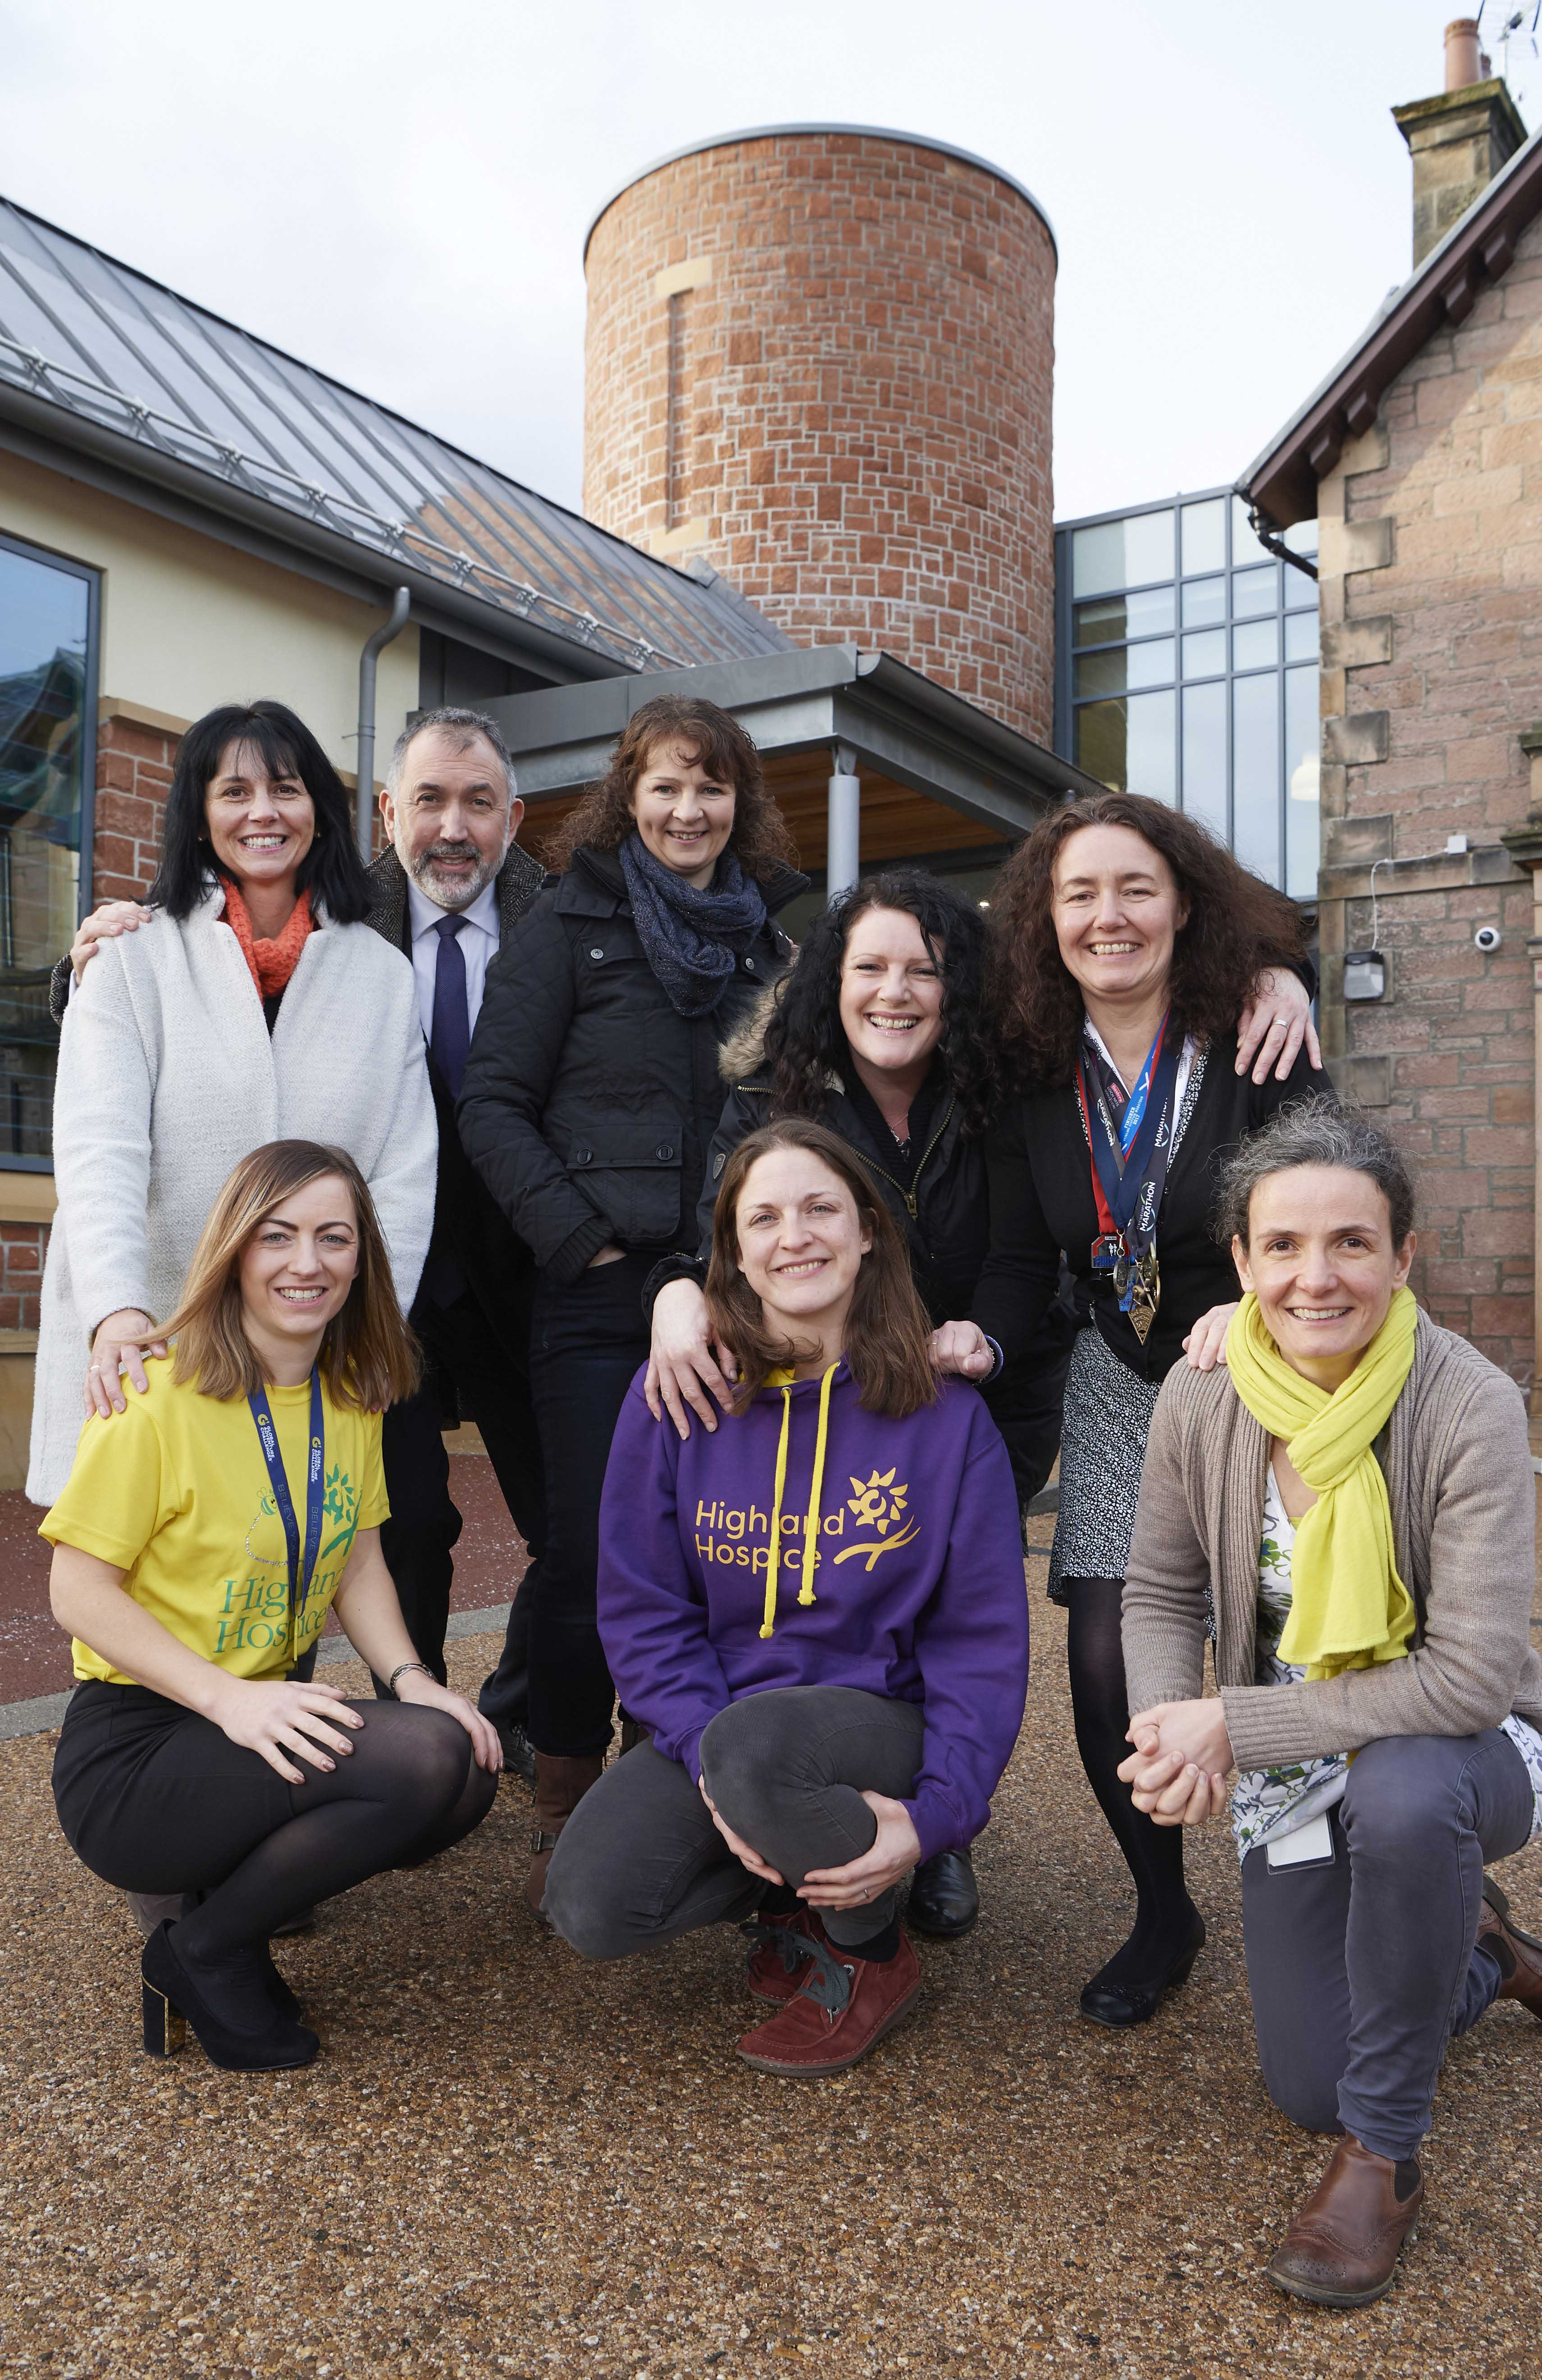 University staff raise over £6000 for Highland Hospice